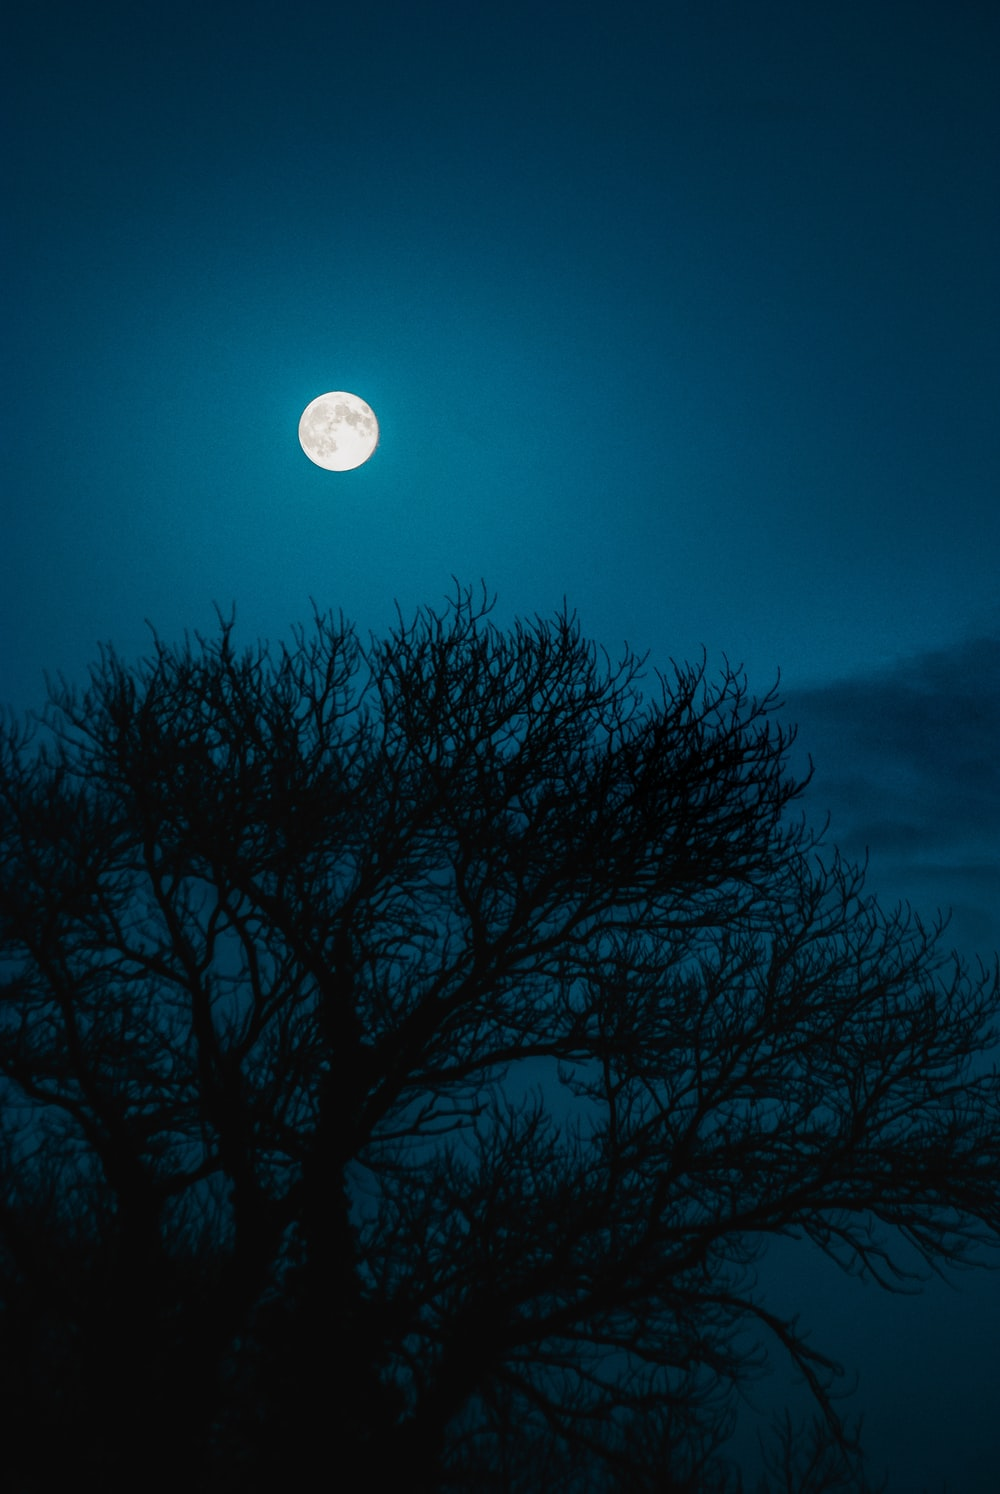 full moon over silhouette of leafless tree